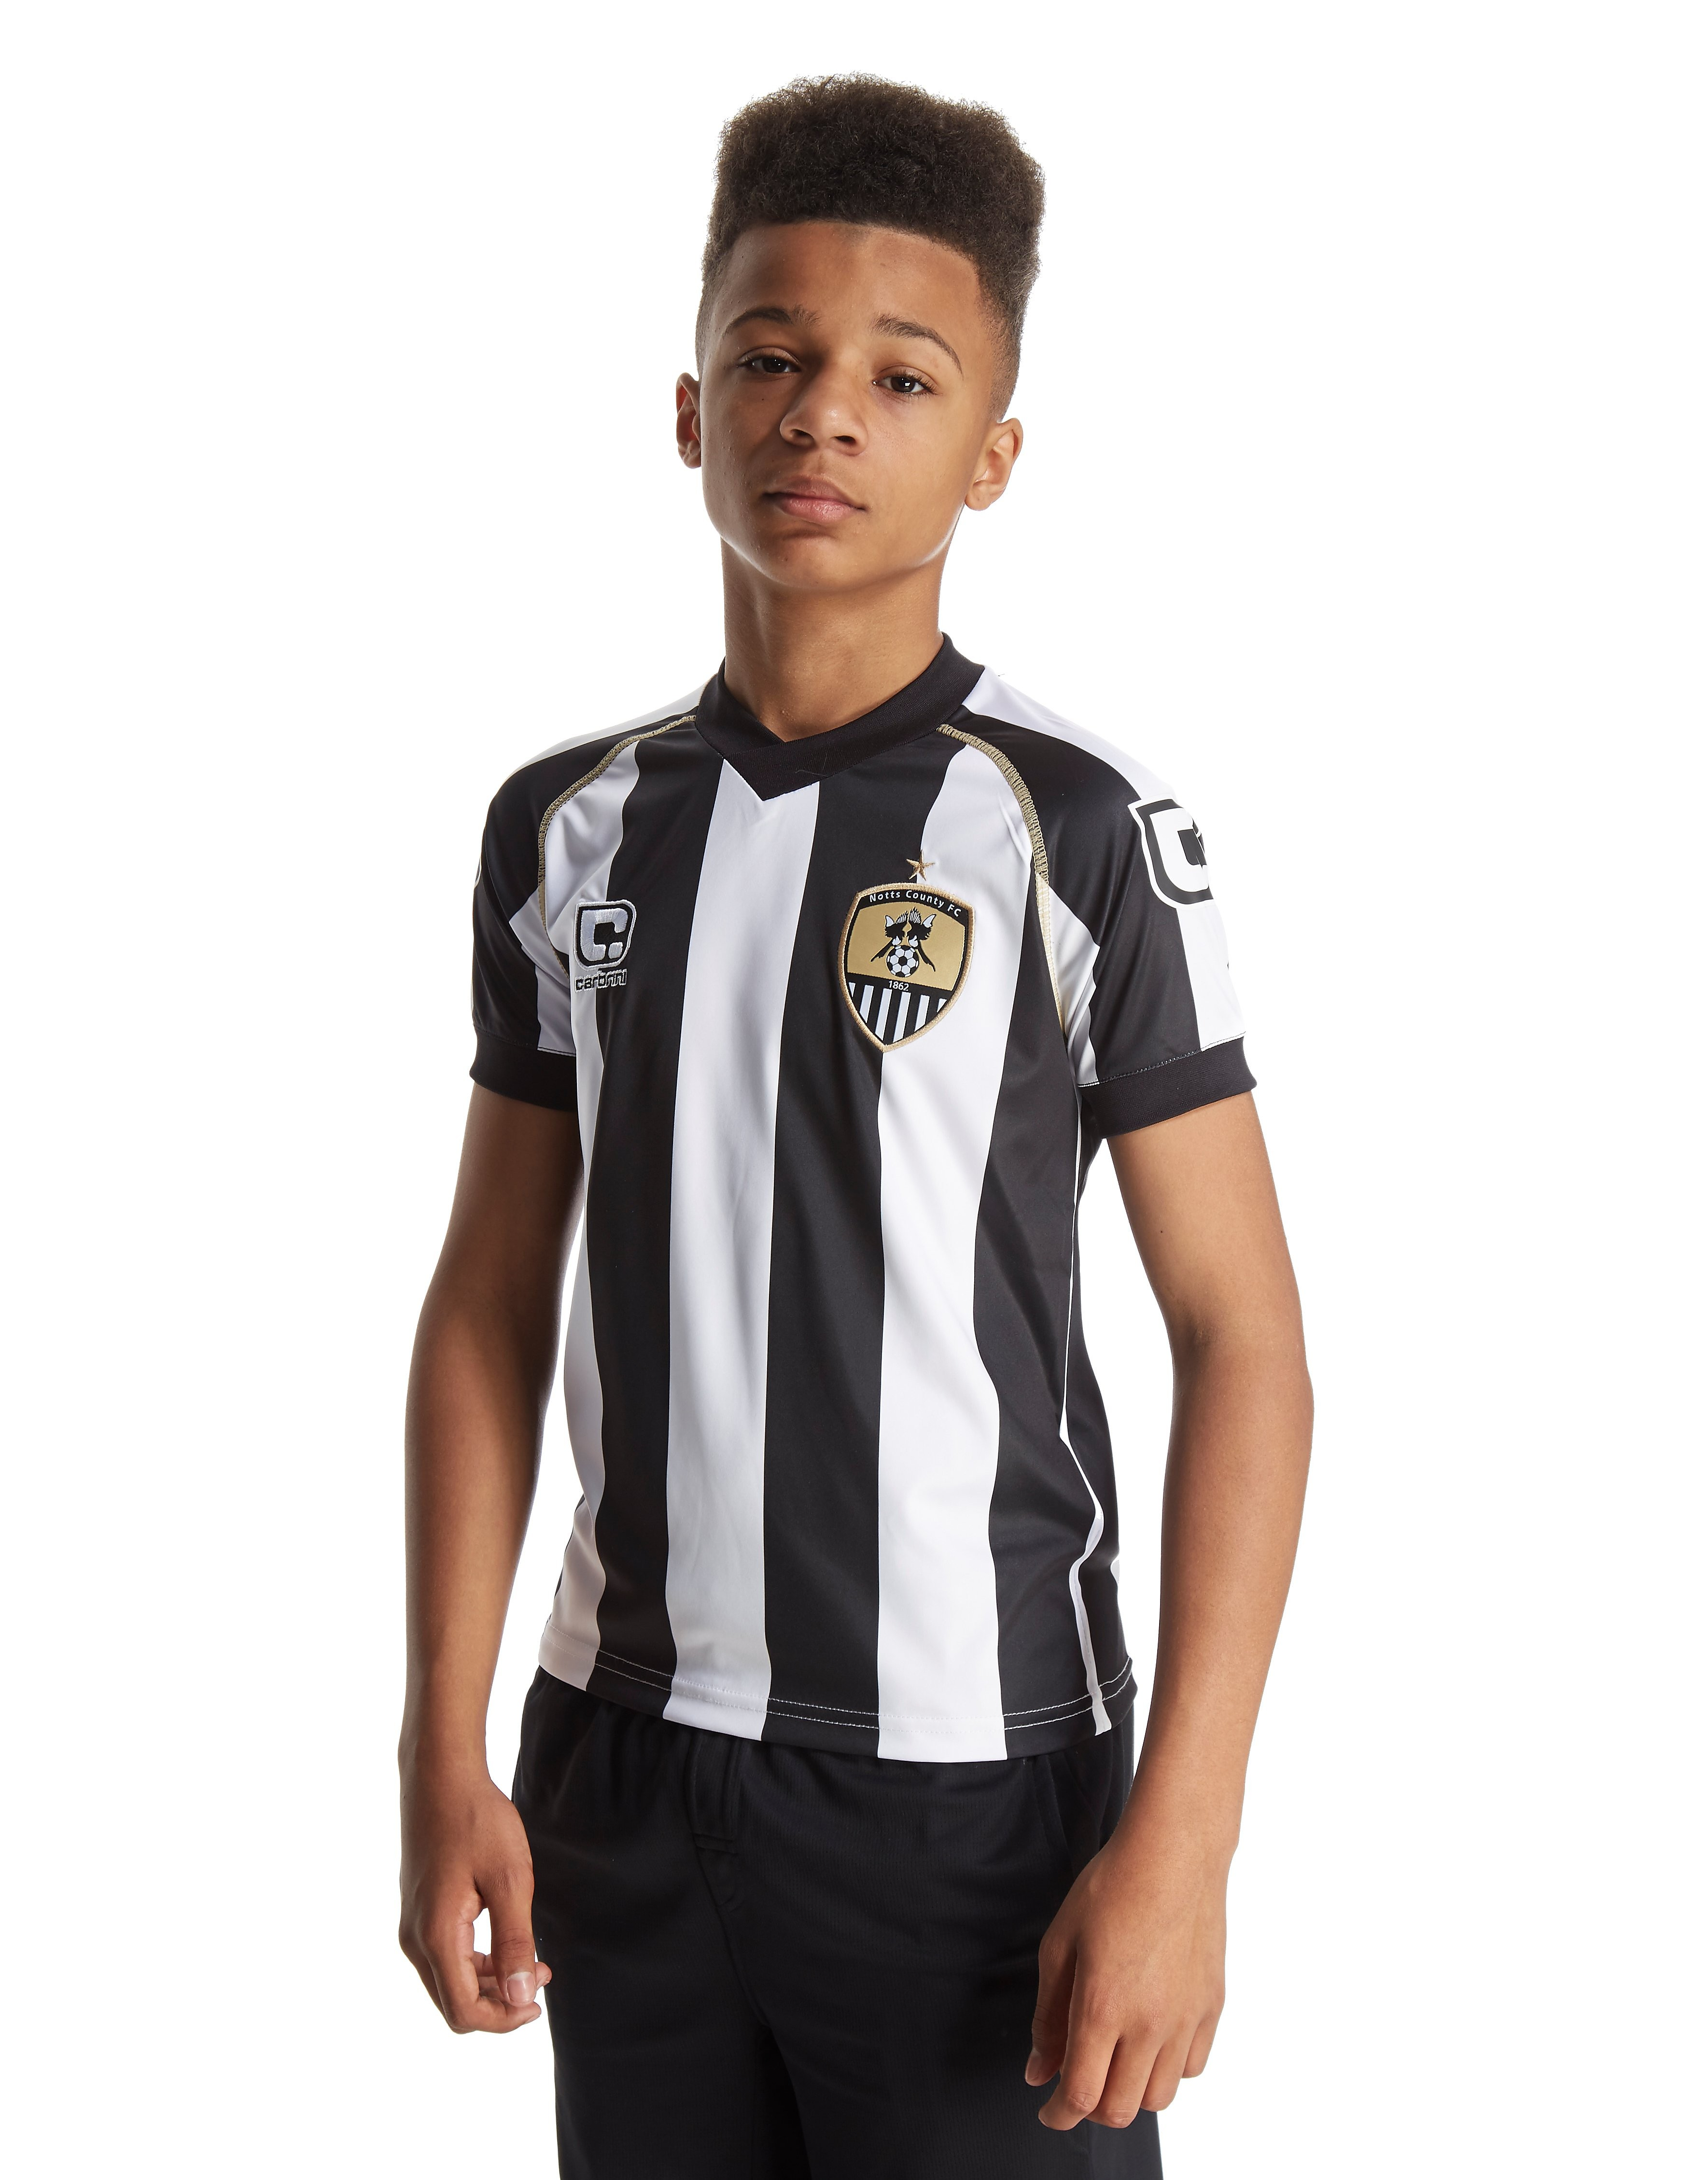 Carbrini Notts County FC 2016/17 Home Shirt Junior